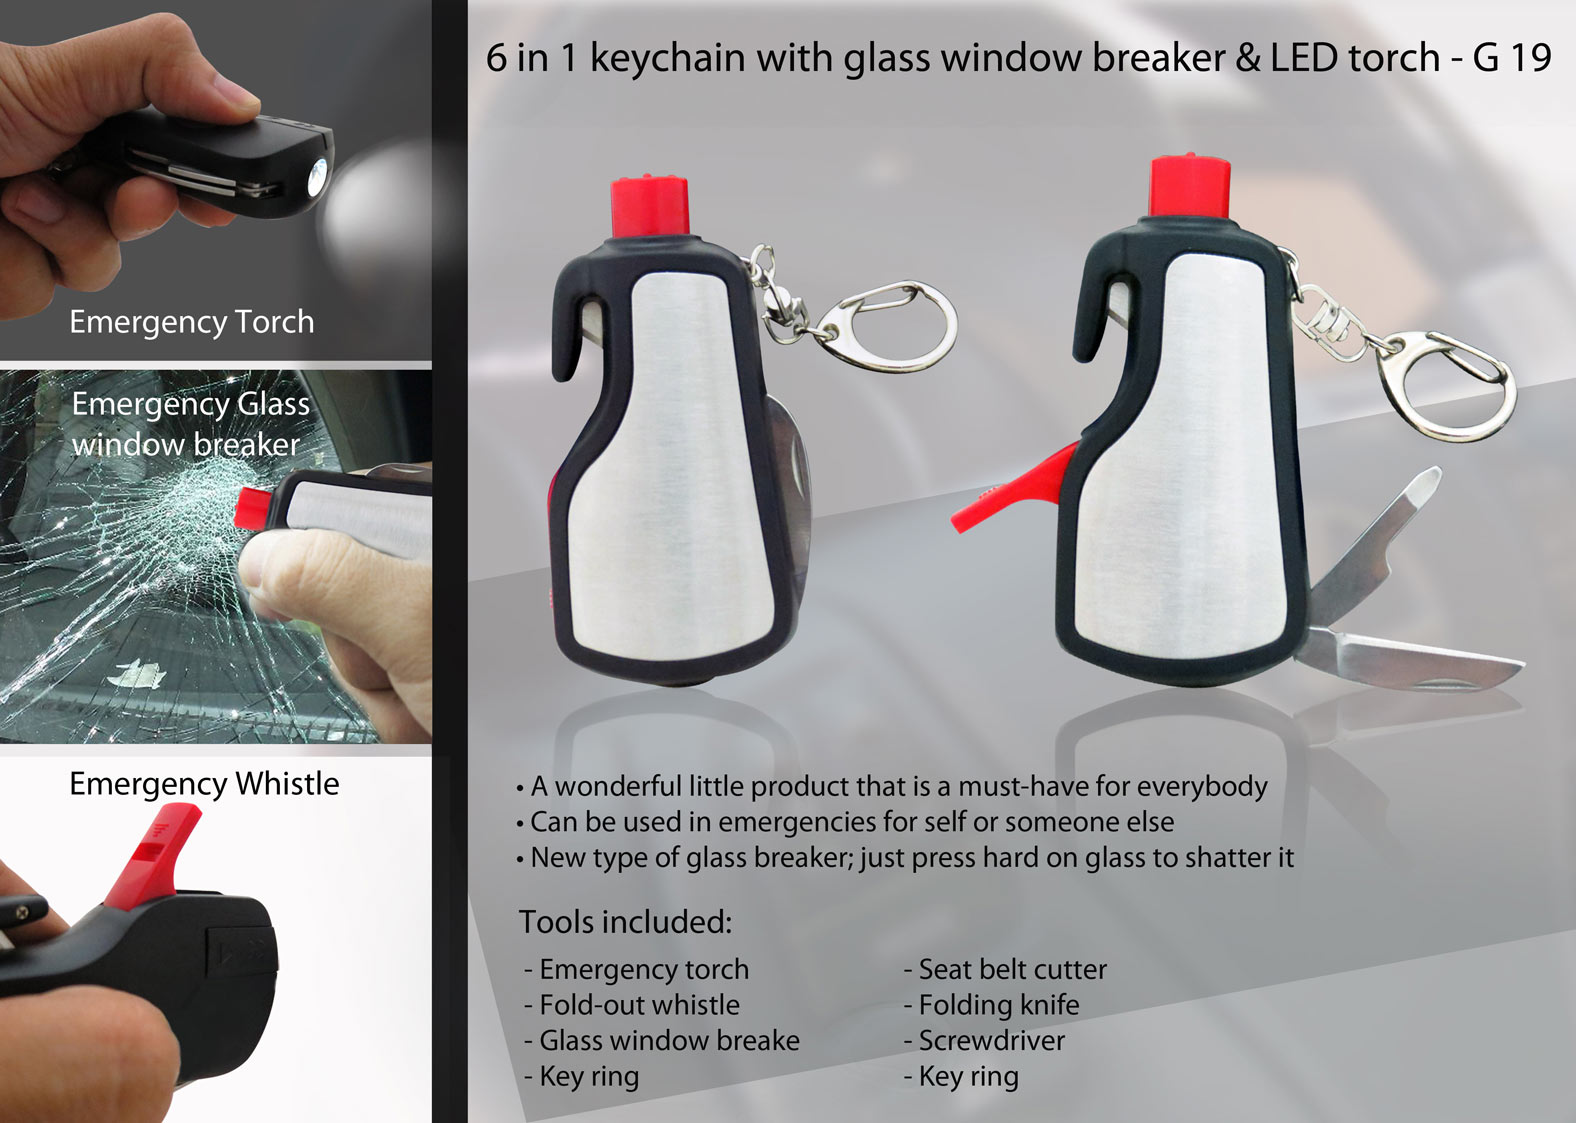 G19 - 6 in 1 keychain with glass window breaker & LED torch